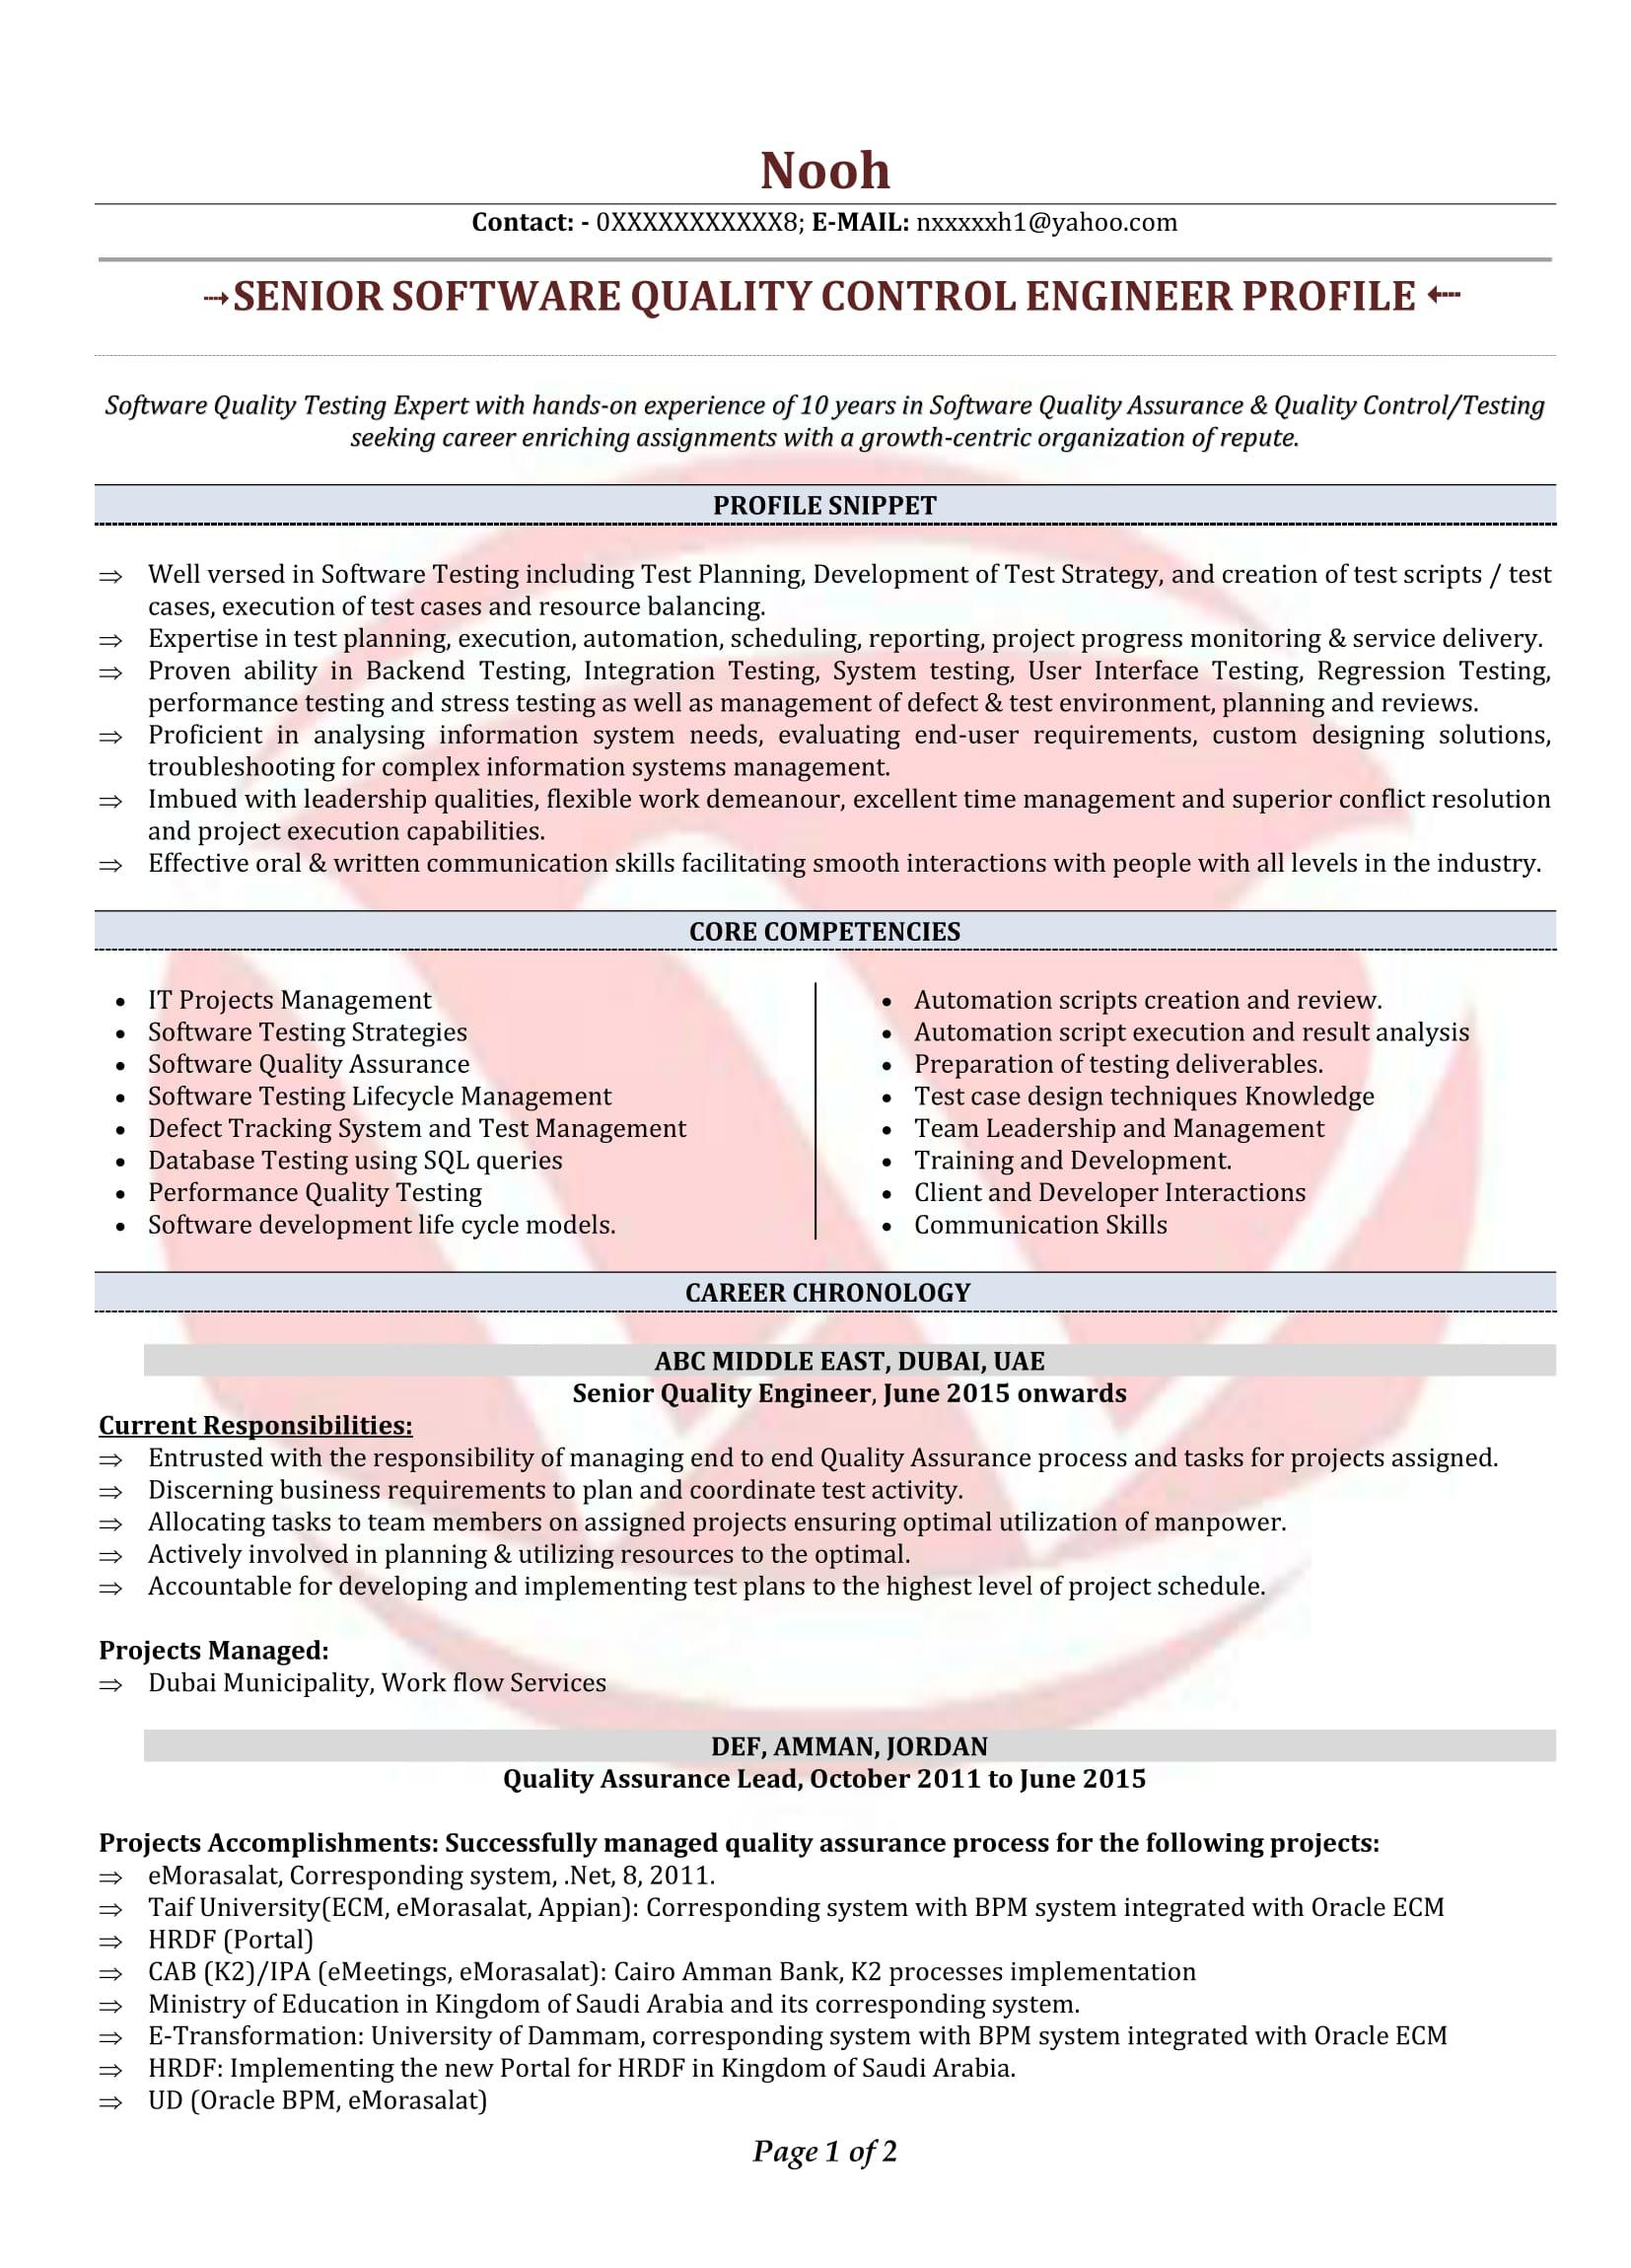 88 Inspirational Software Quality Assurance Engineer Resume with Ideas